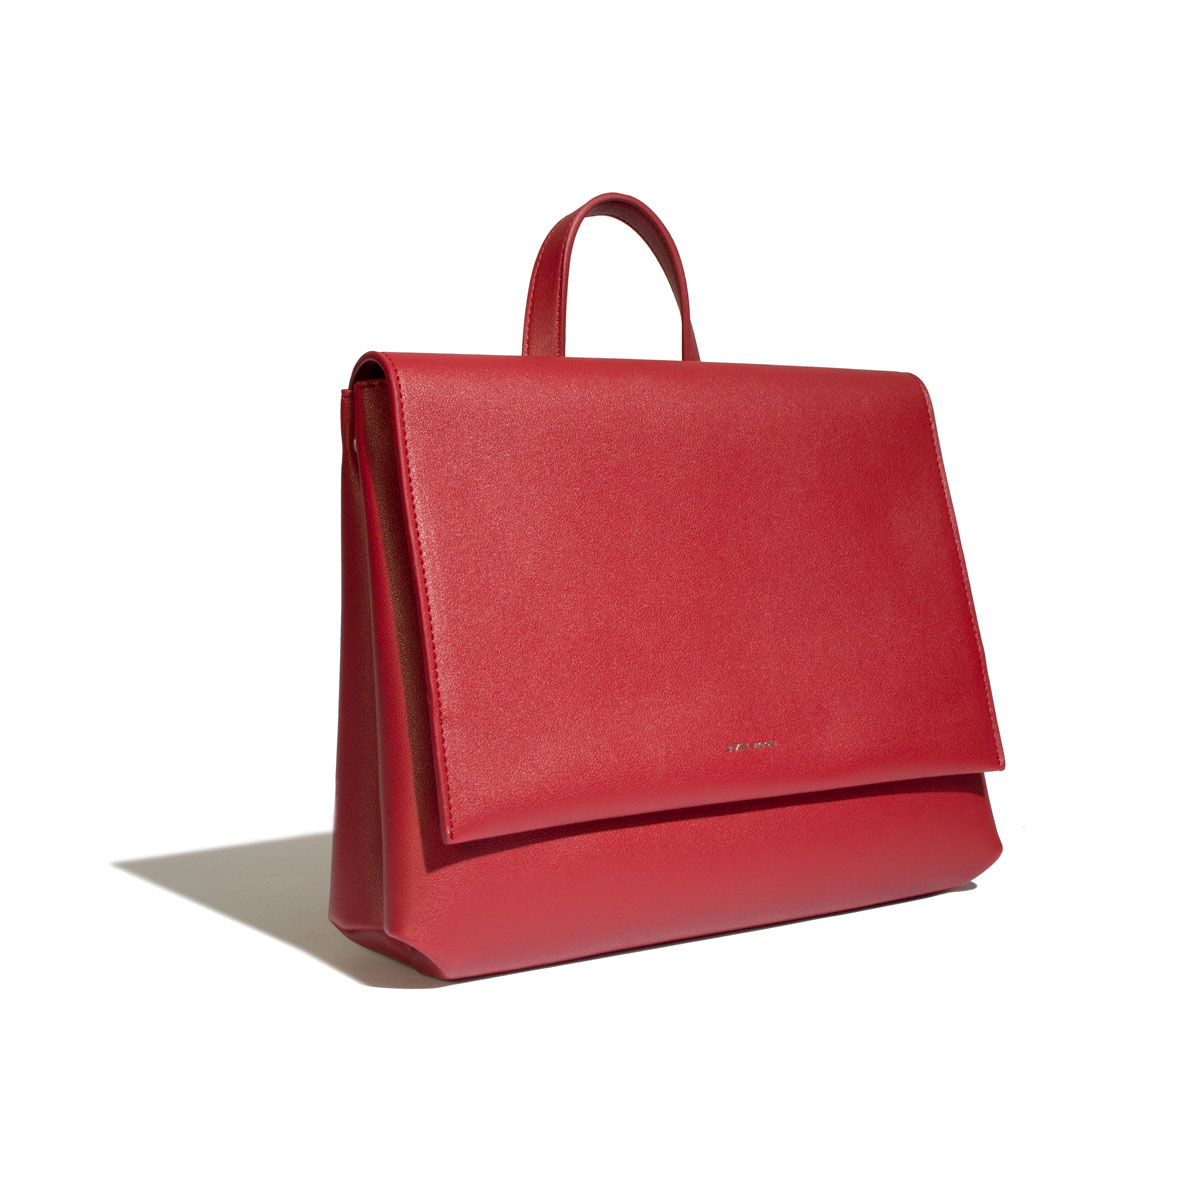 Janice Convertible Bag - Red-2